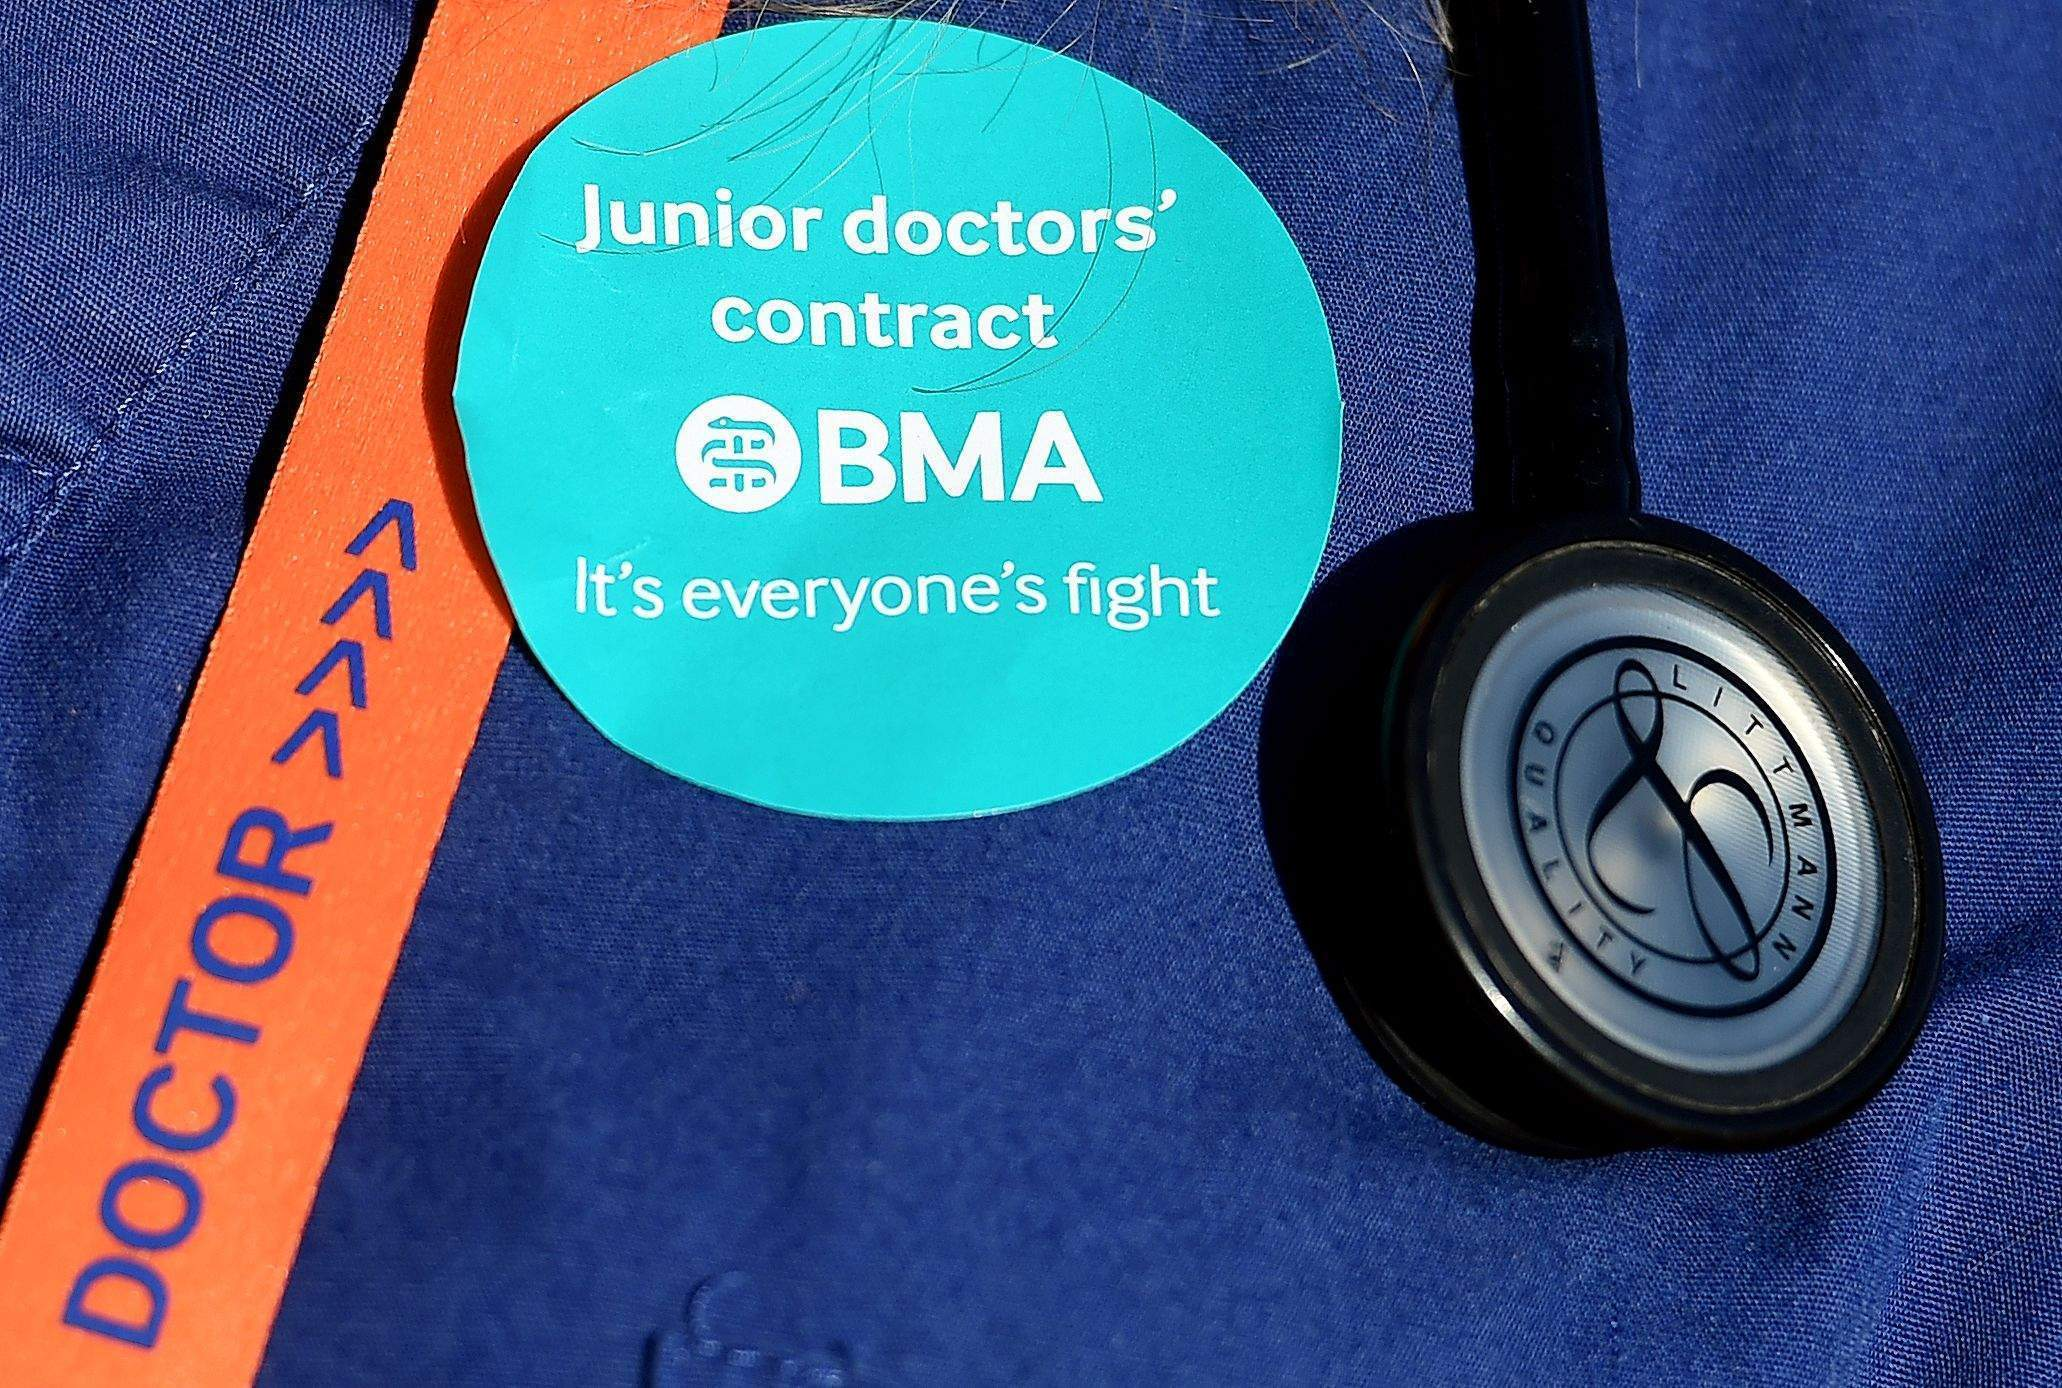 I, like all junior doctors, may have to walk out on the NHS